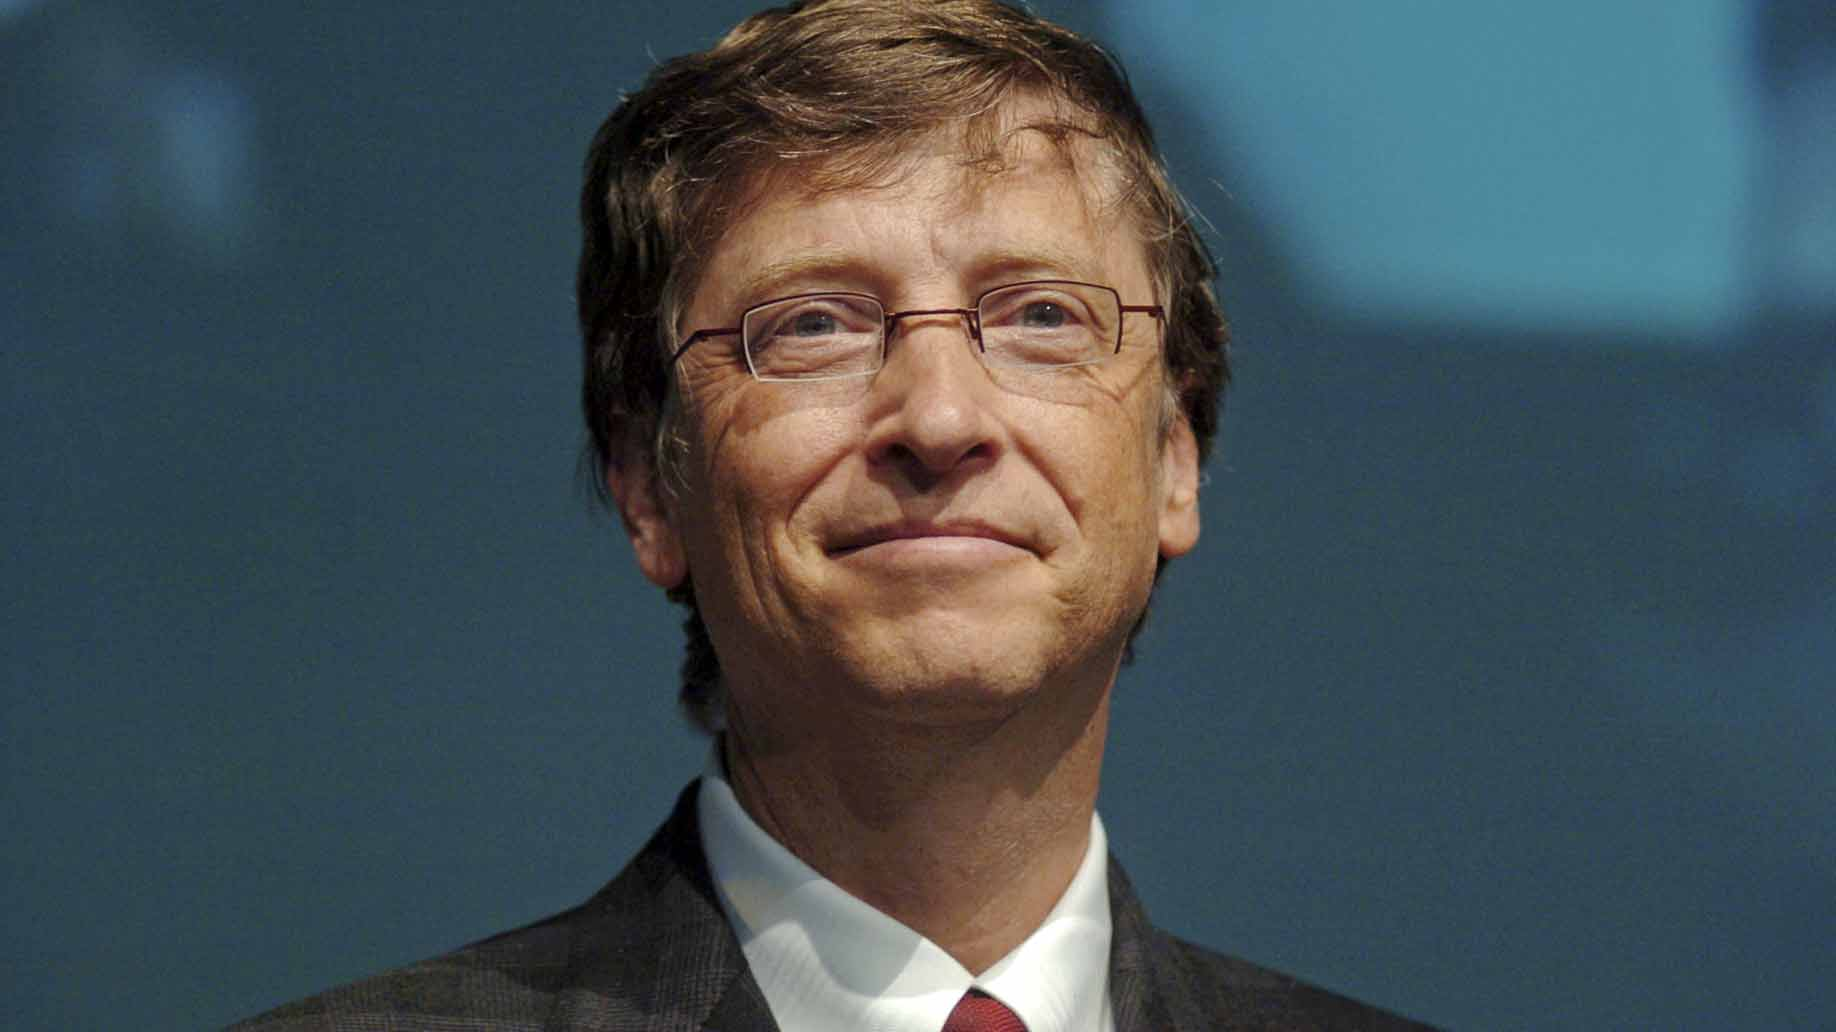 bill gates photo by paolo bona